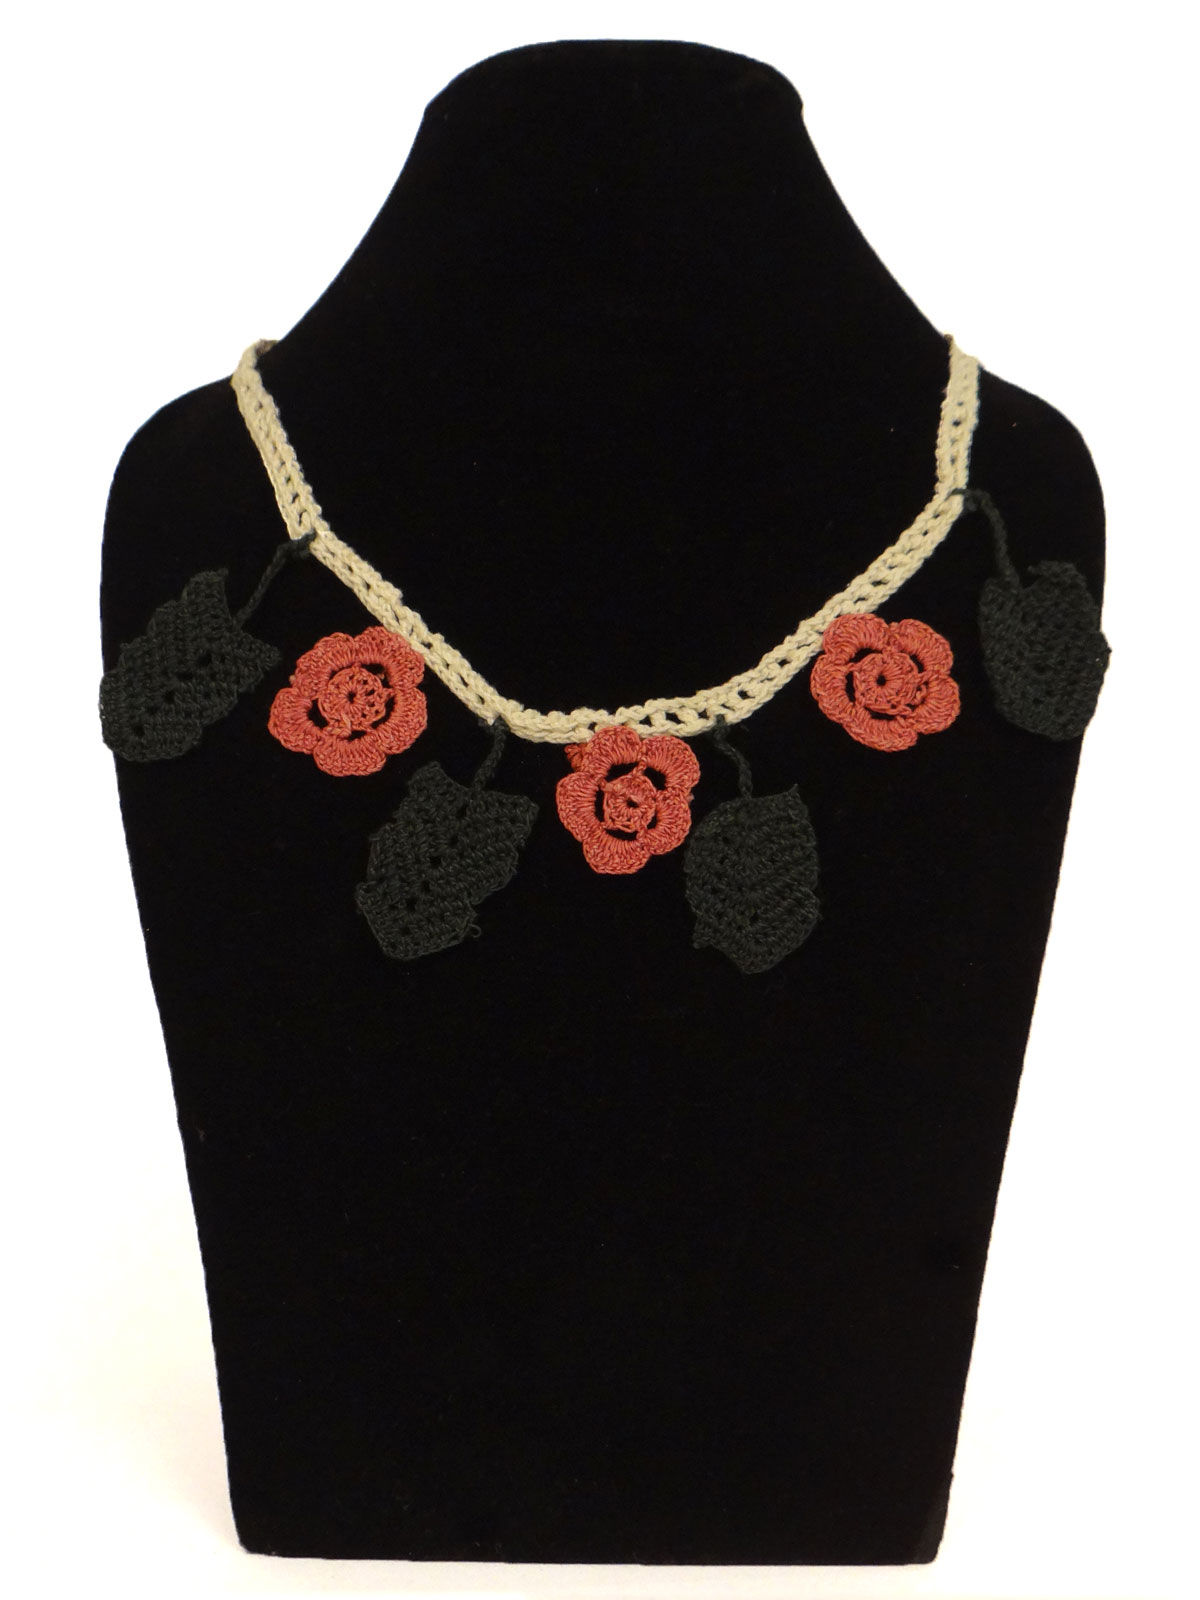 Leaf and rose design crochet fabric necklace and bracelet